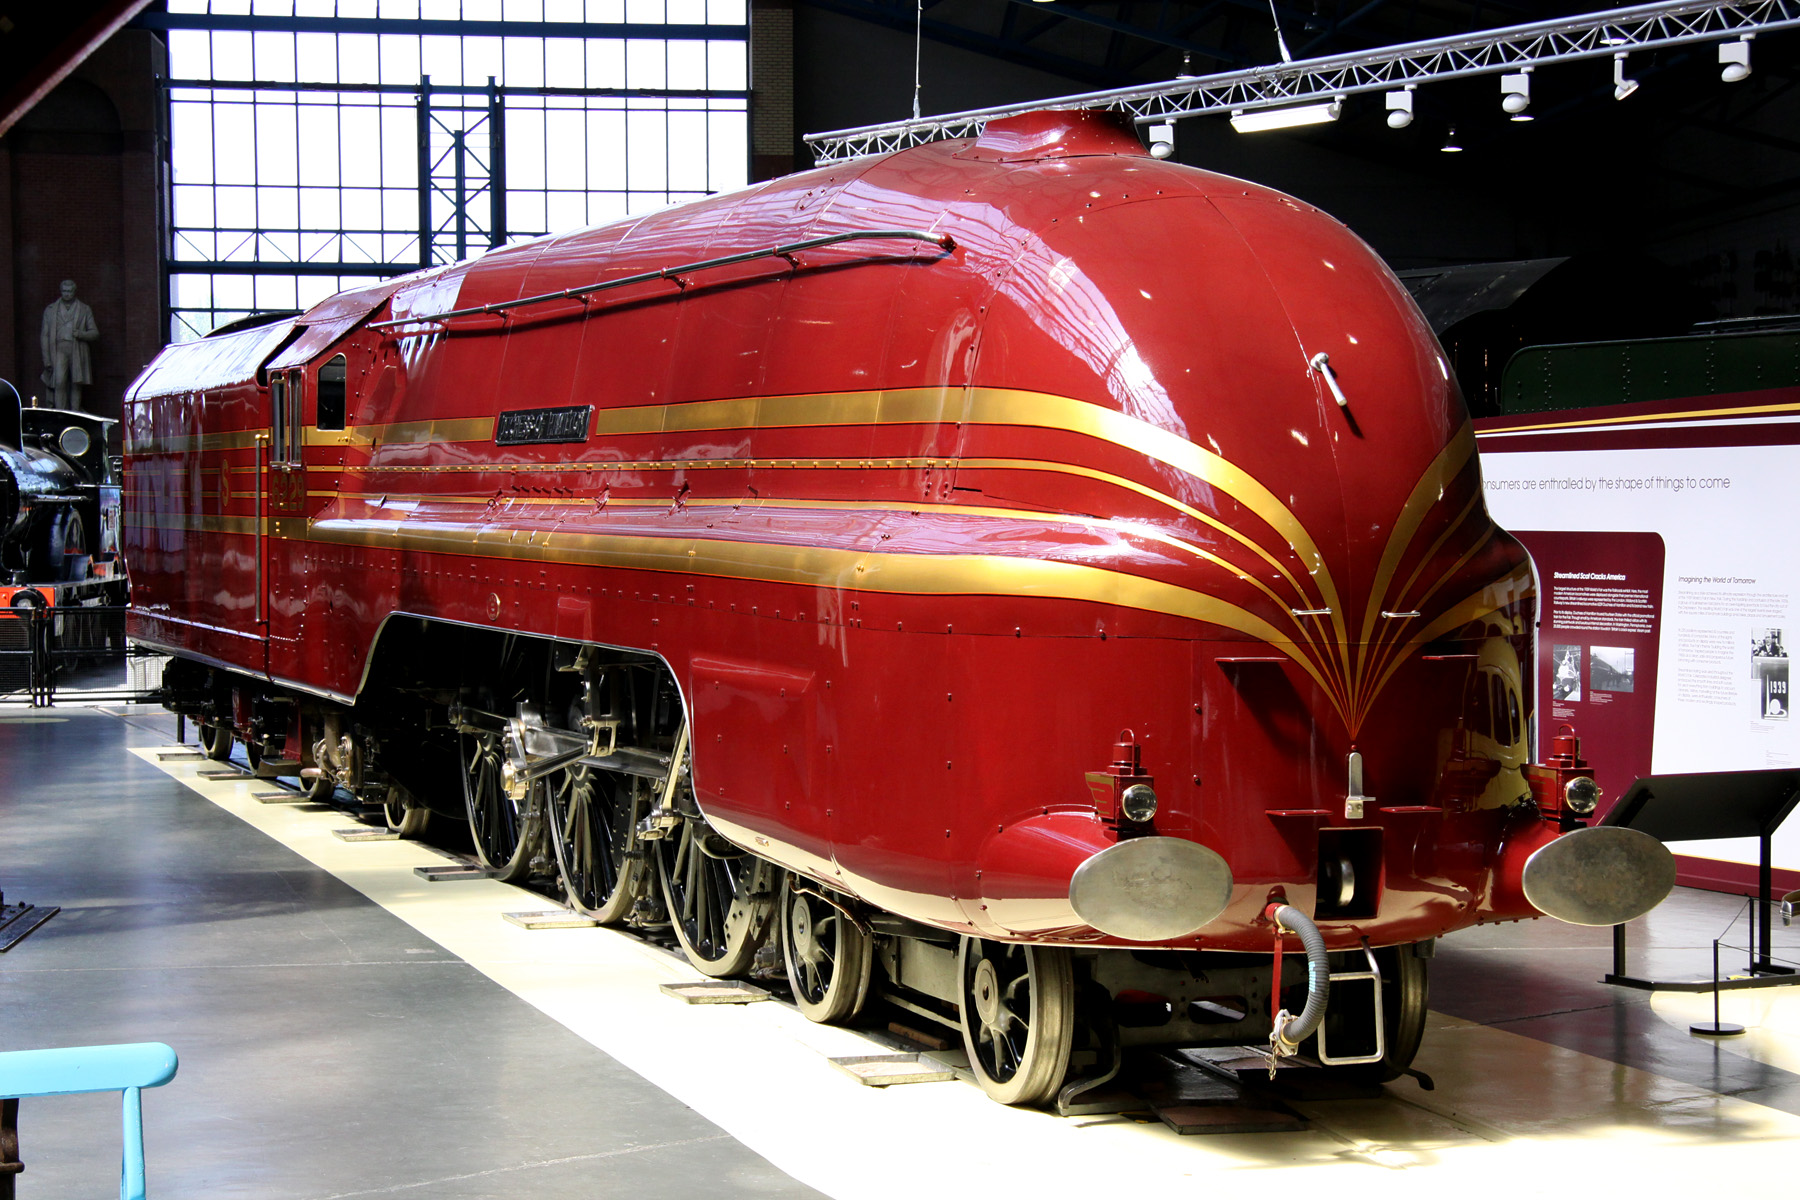 https://upload.wikimedia.org/wikipedia/commons/b/b7/6229_DUCHESS_OF_HAMILTON_National_Railway_Museum_%285%29.jpg